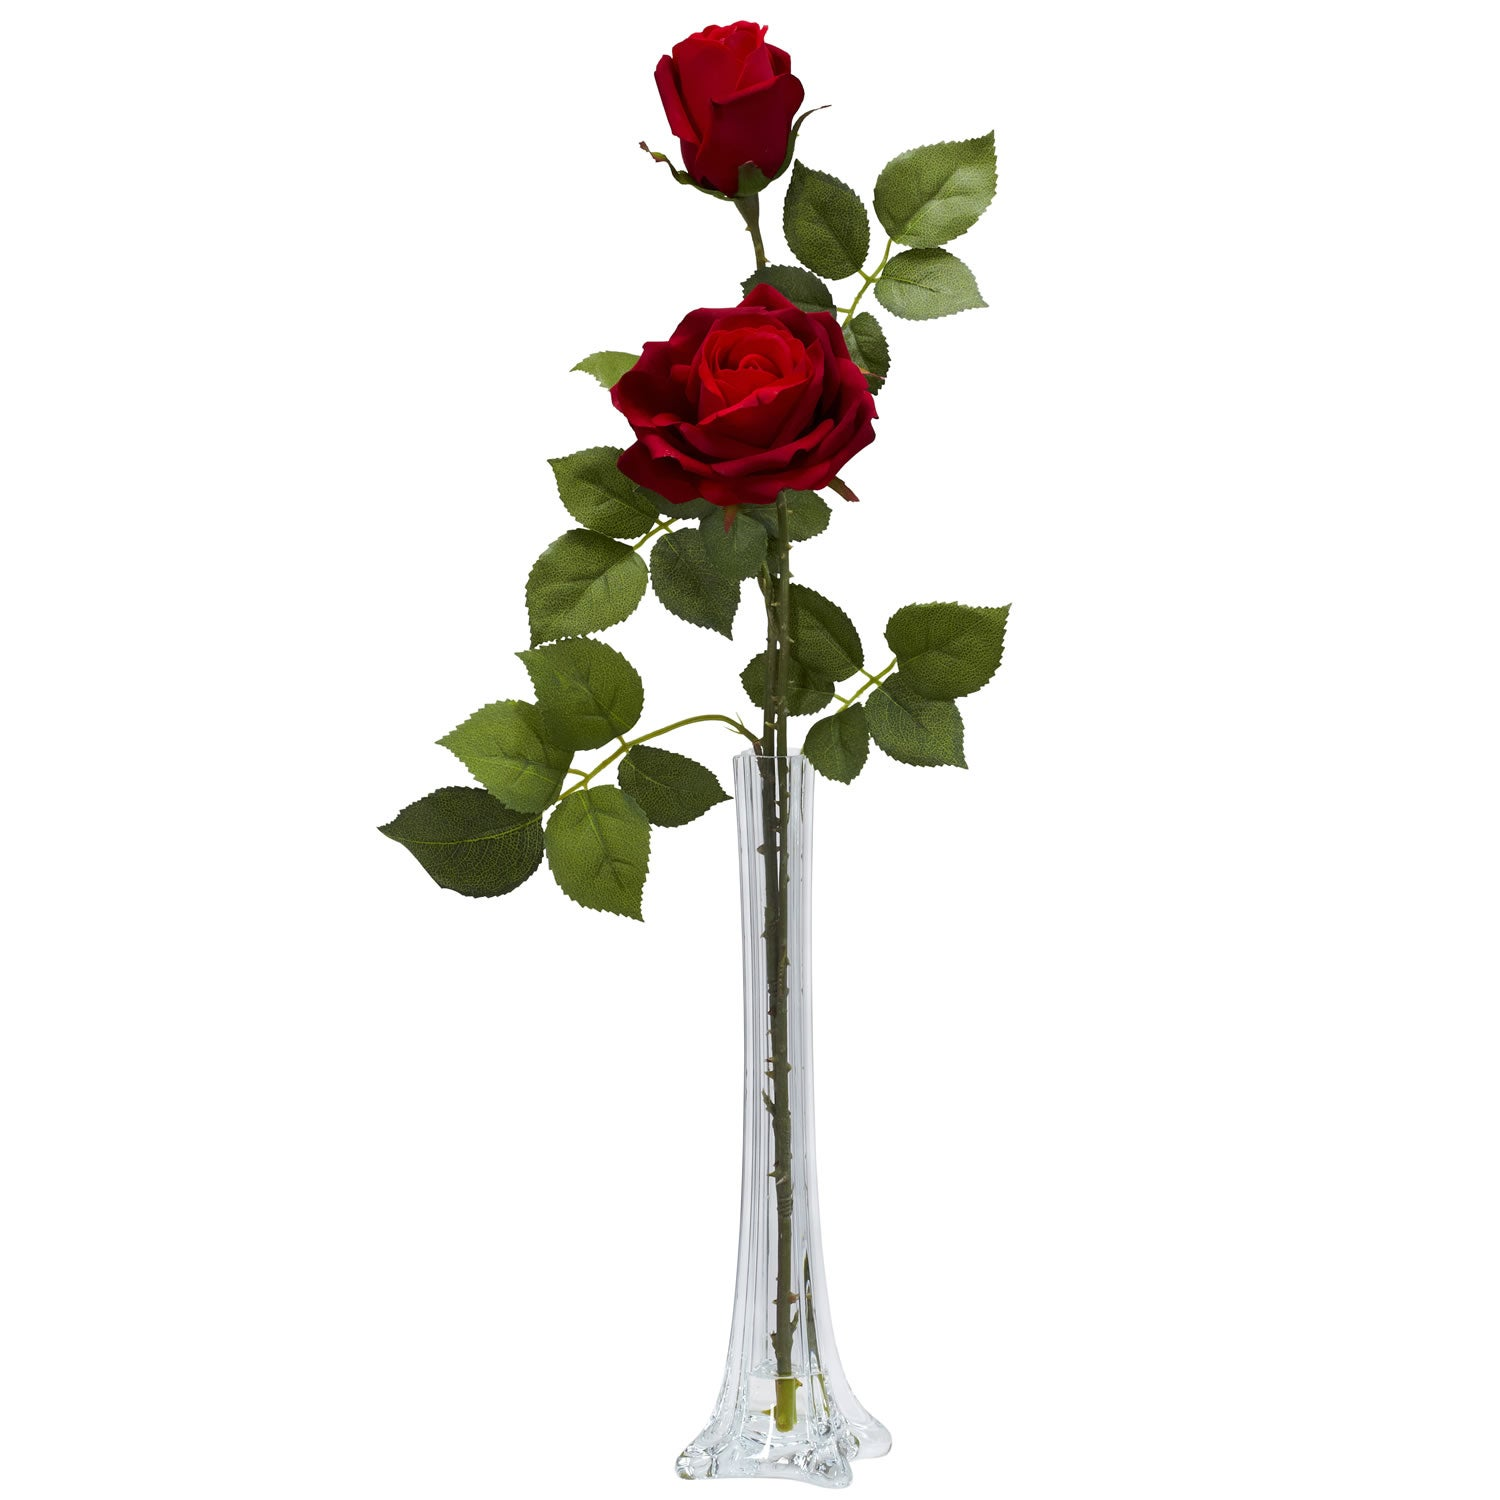 Roses tall bud vase silk flower arrangement 13901790 - Flower arrangements for vases ...